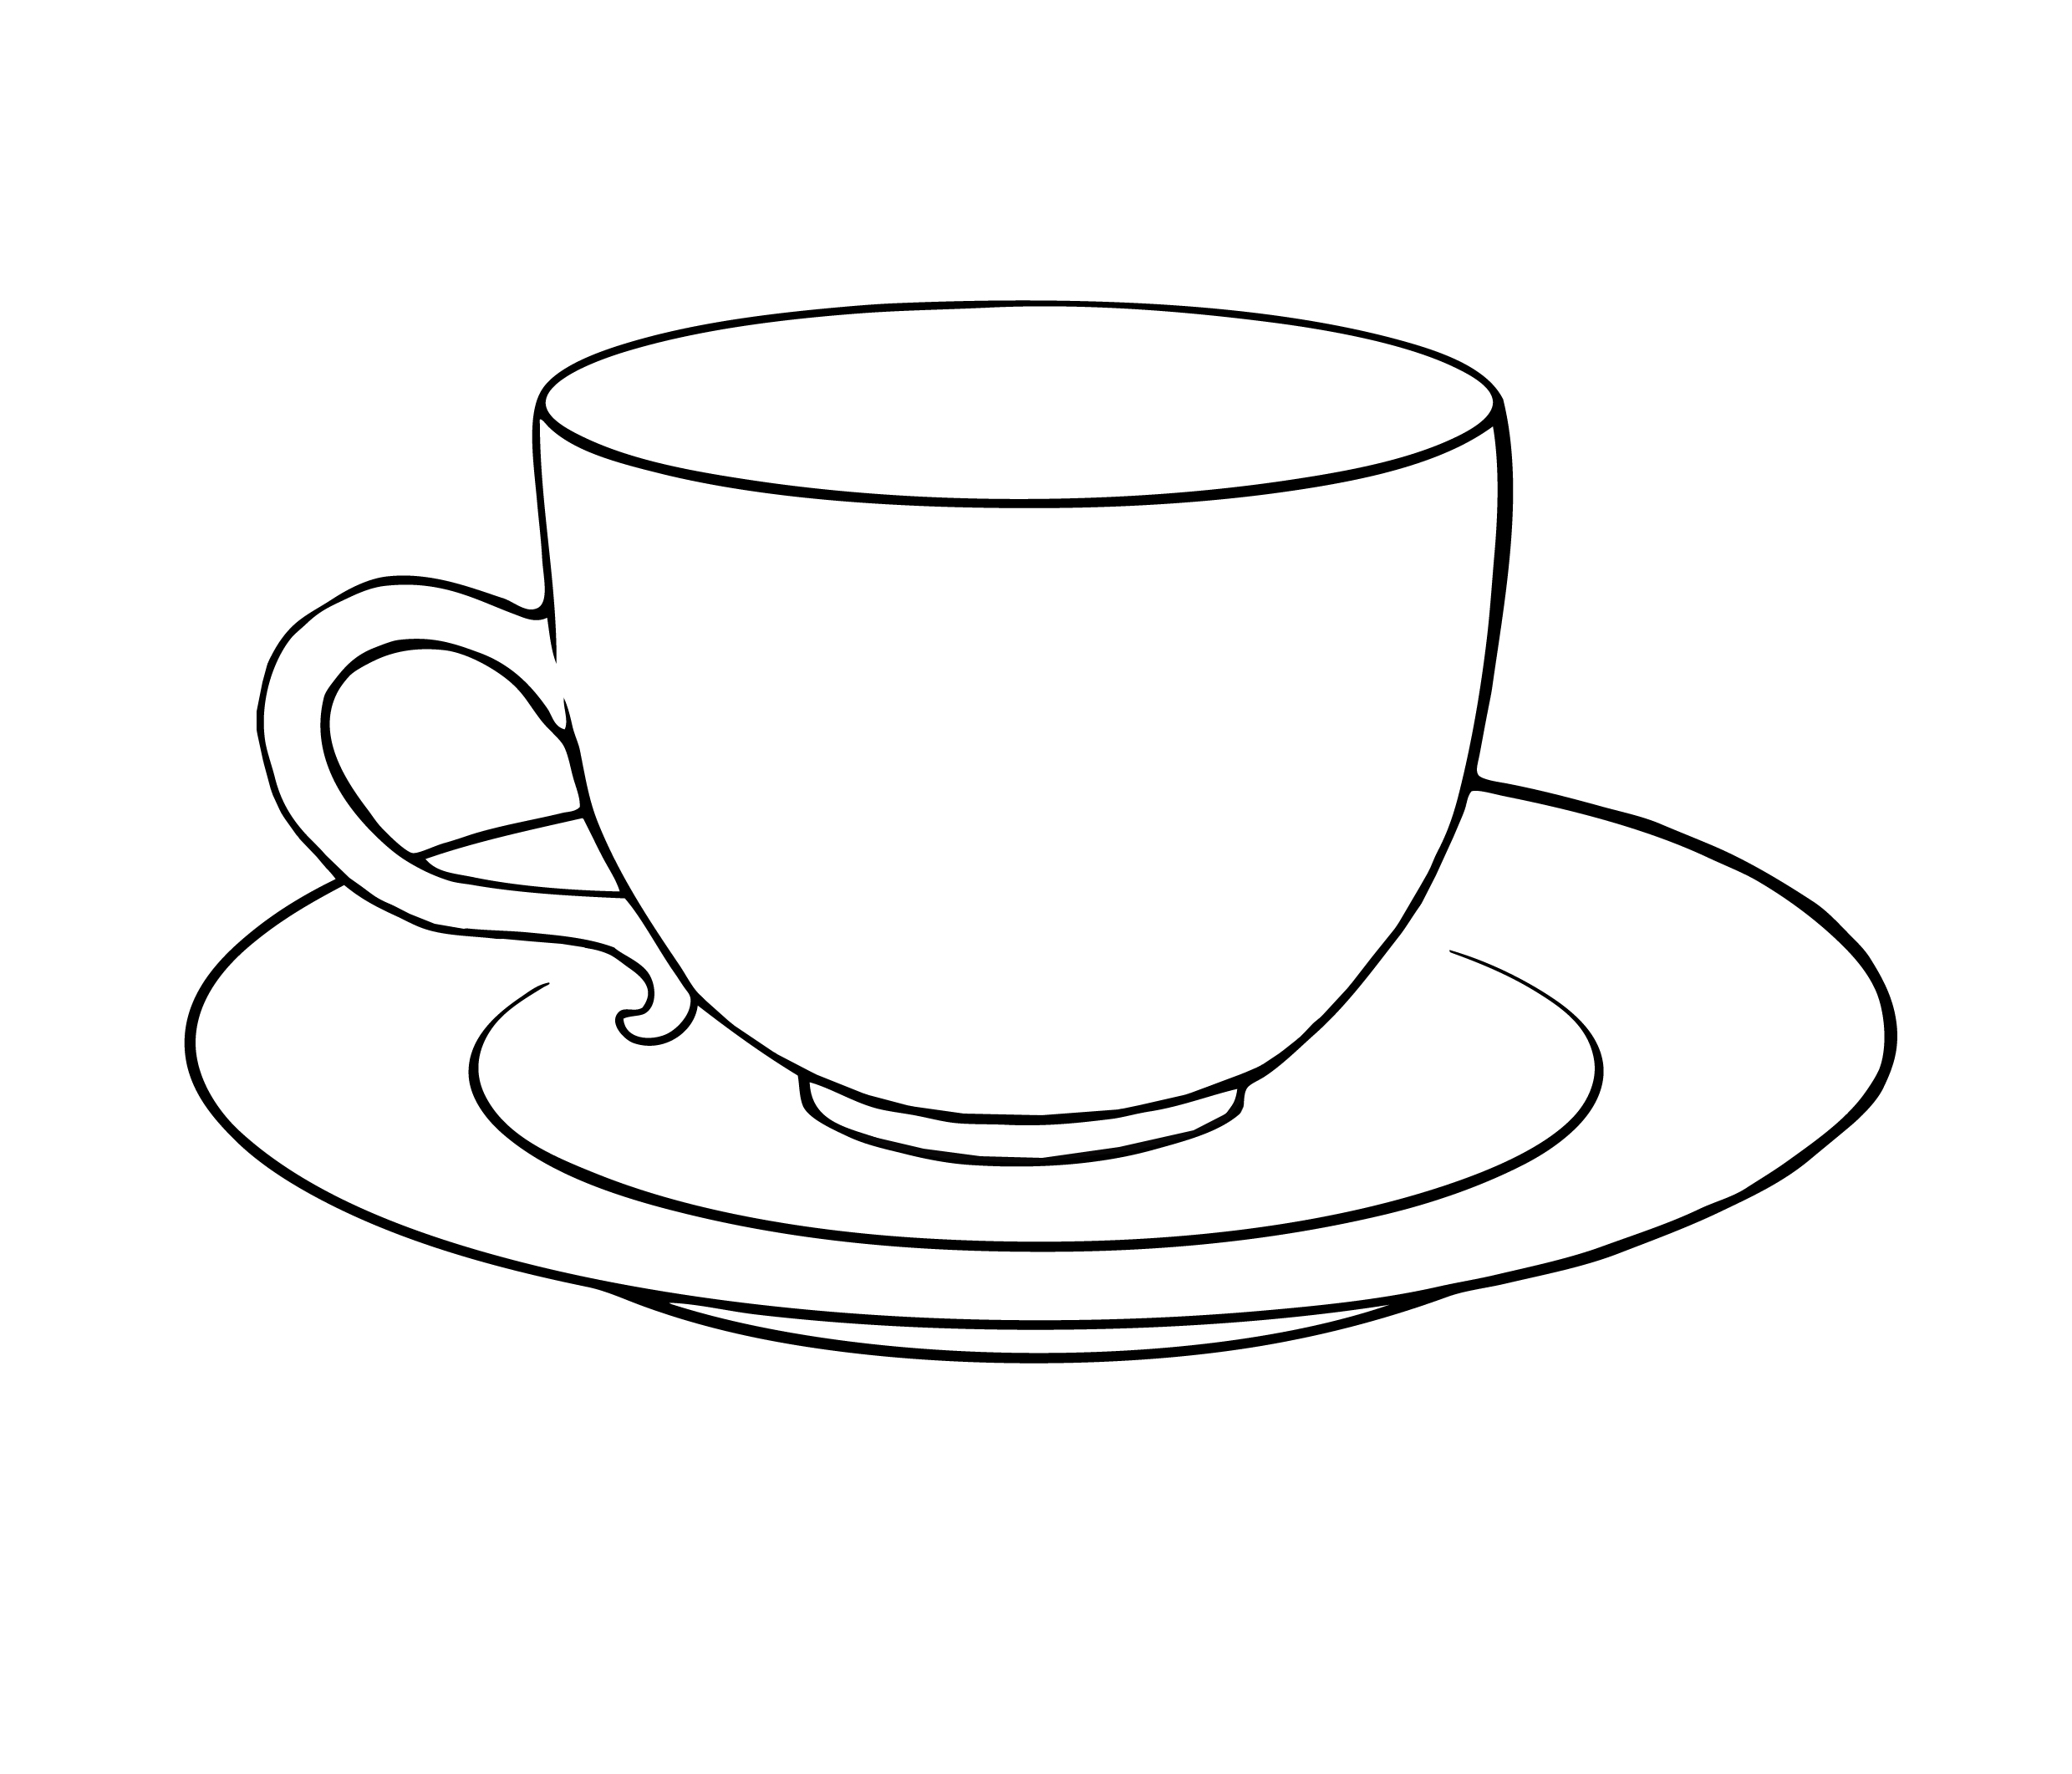 tea cup colouring page clipart best